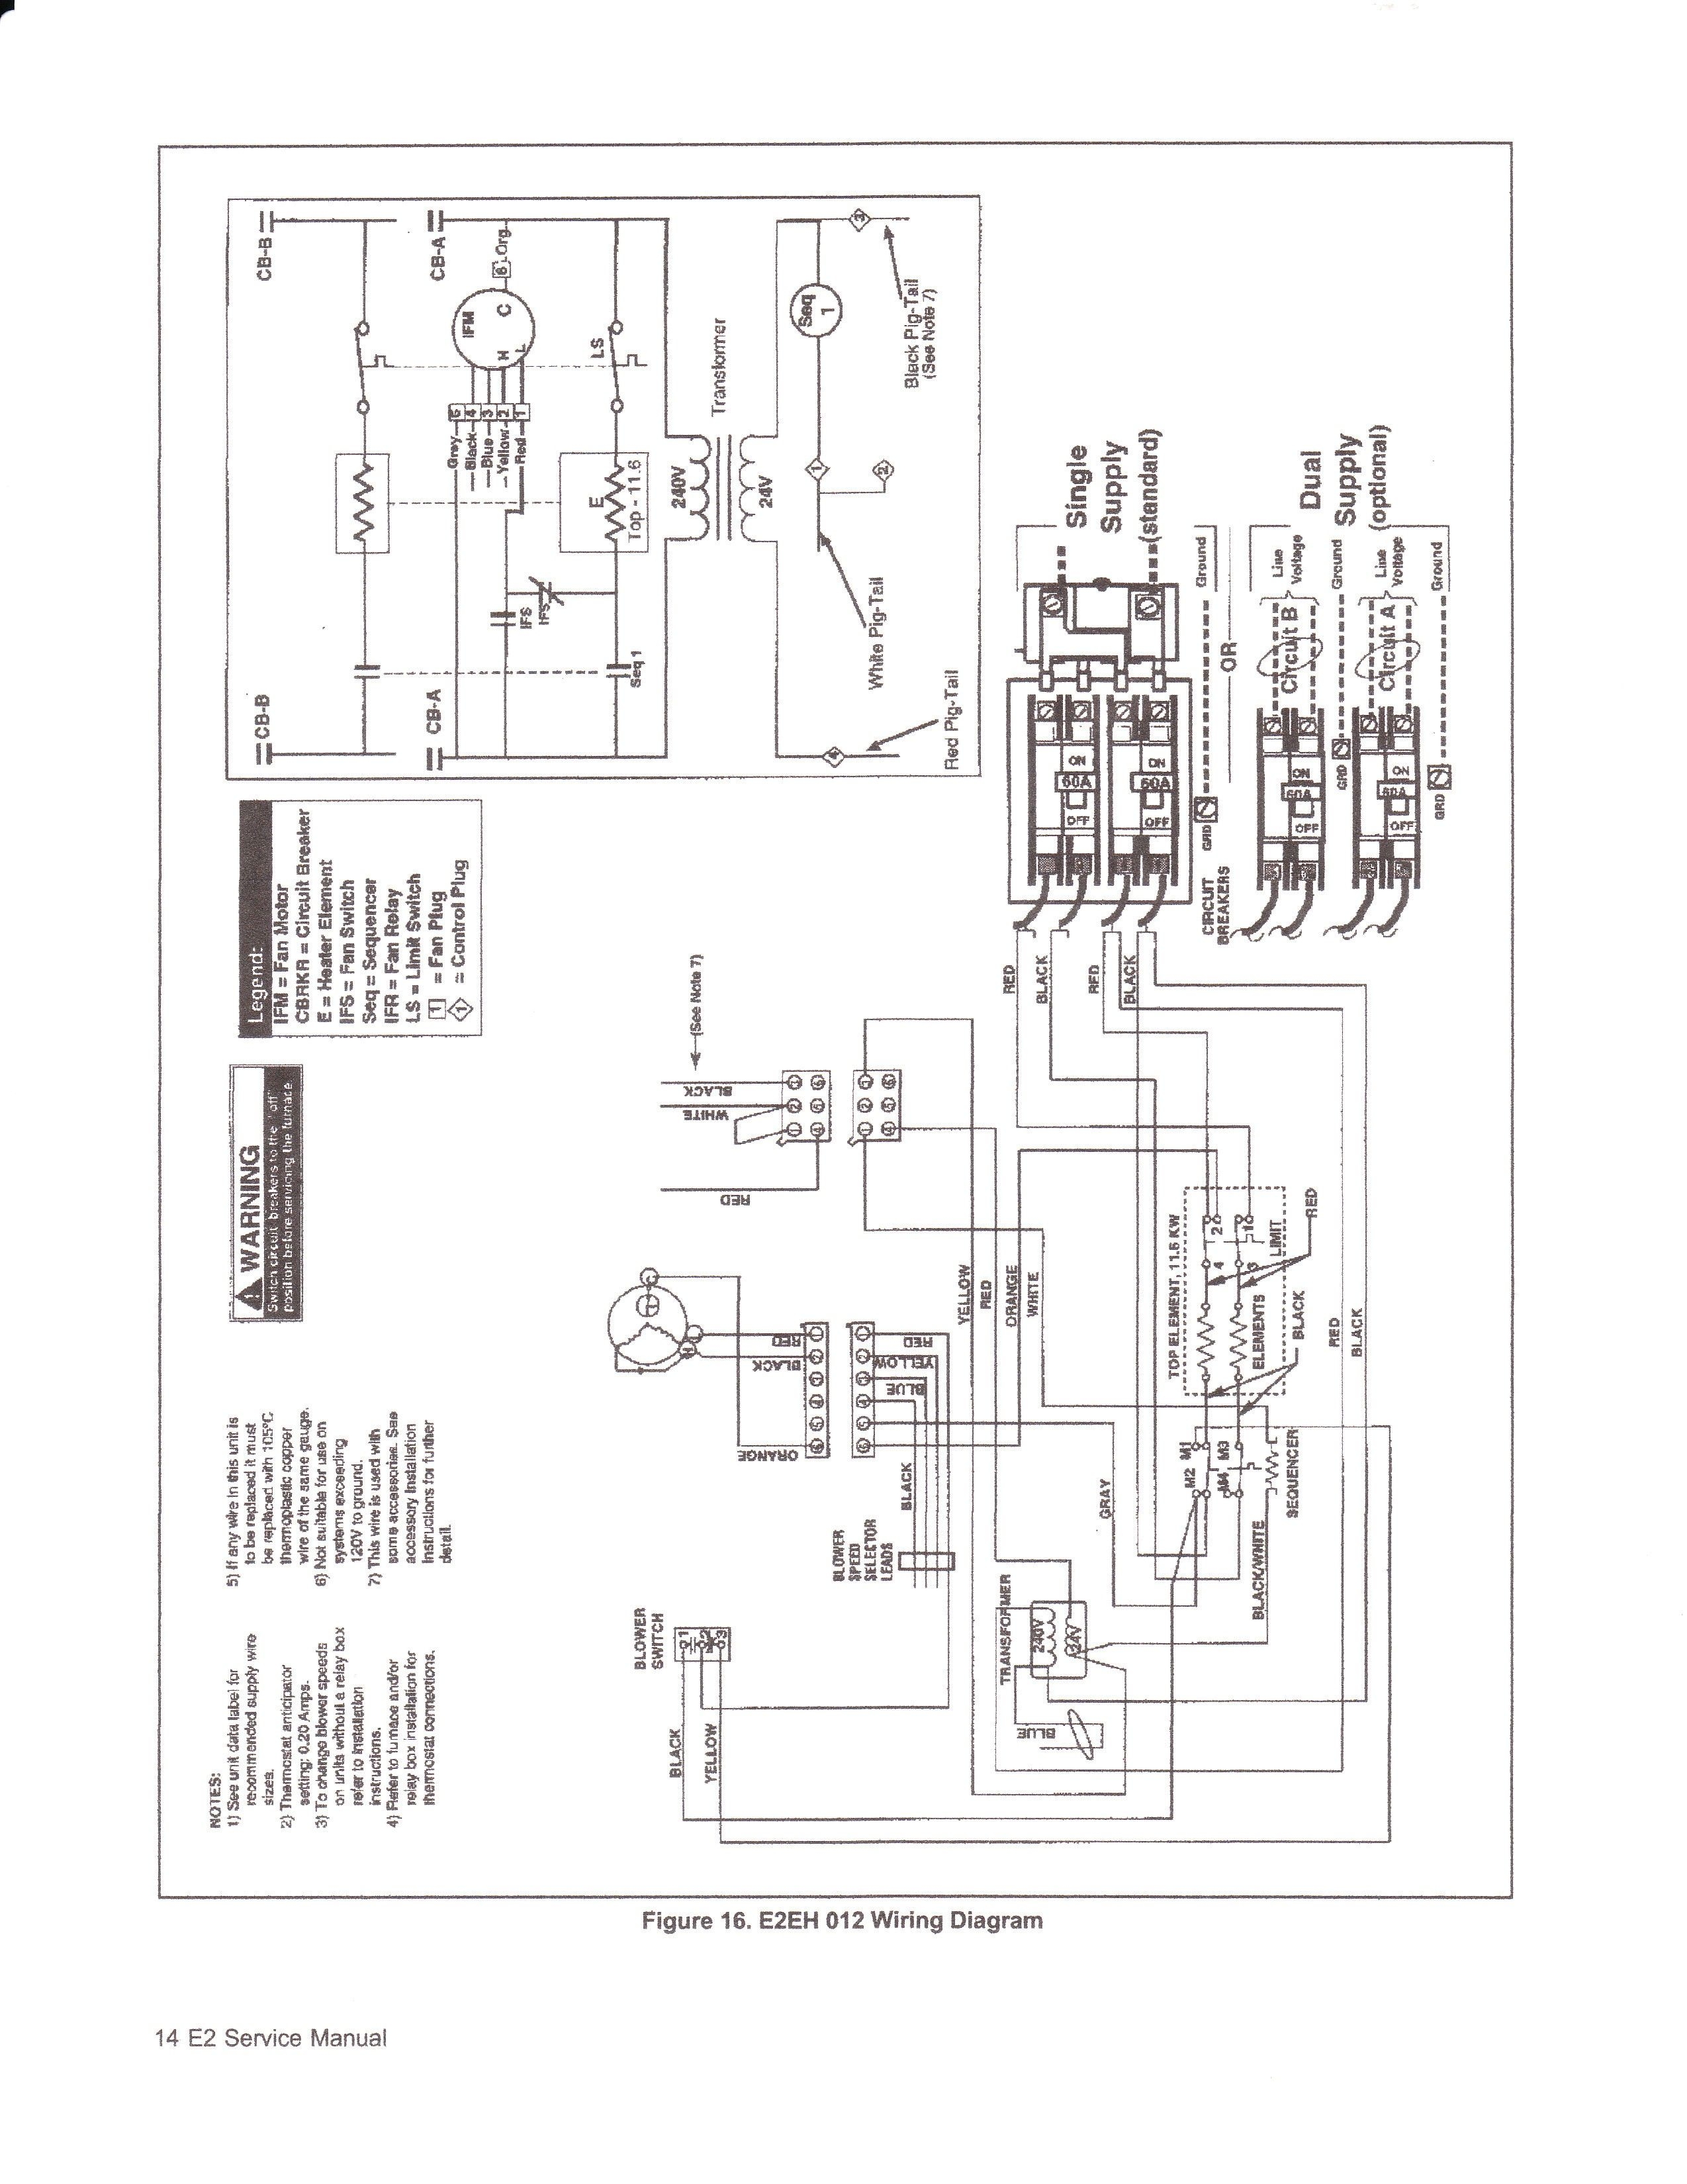 Unique Westinghouse Electric Furnace Wiring Diagram #diagram #diagramsample  #diagramtemplate #wiringdiagram #diagramchart… | Electric furnace, Diagram,  House wiringPinterest